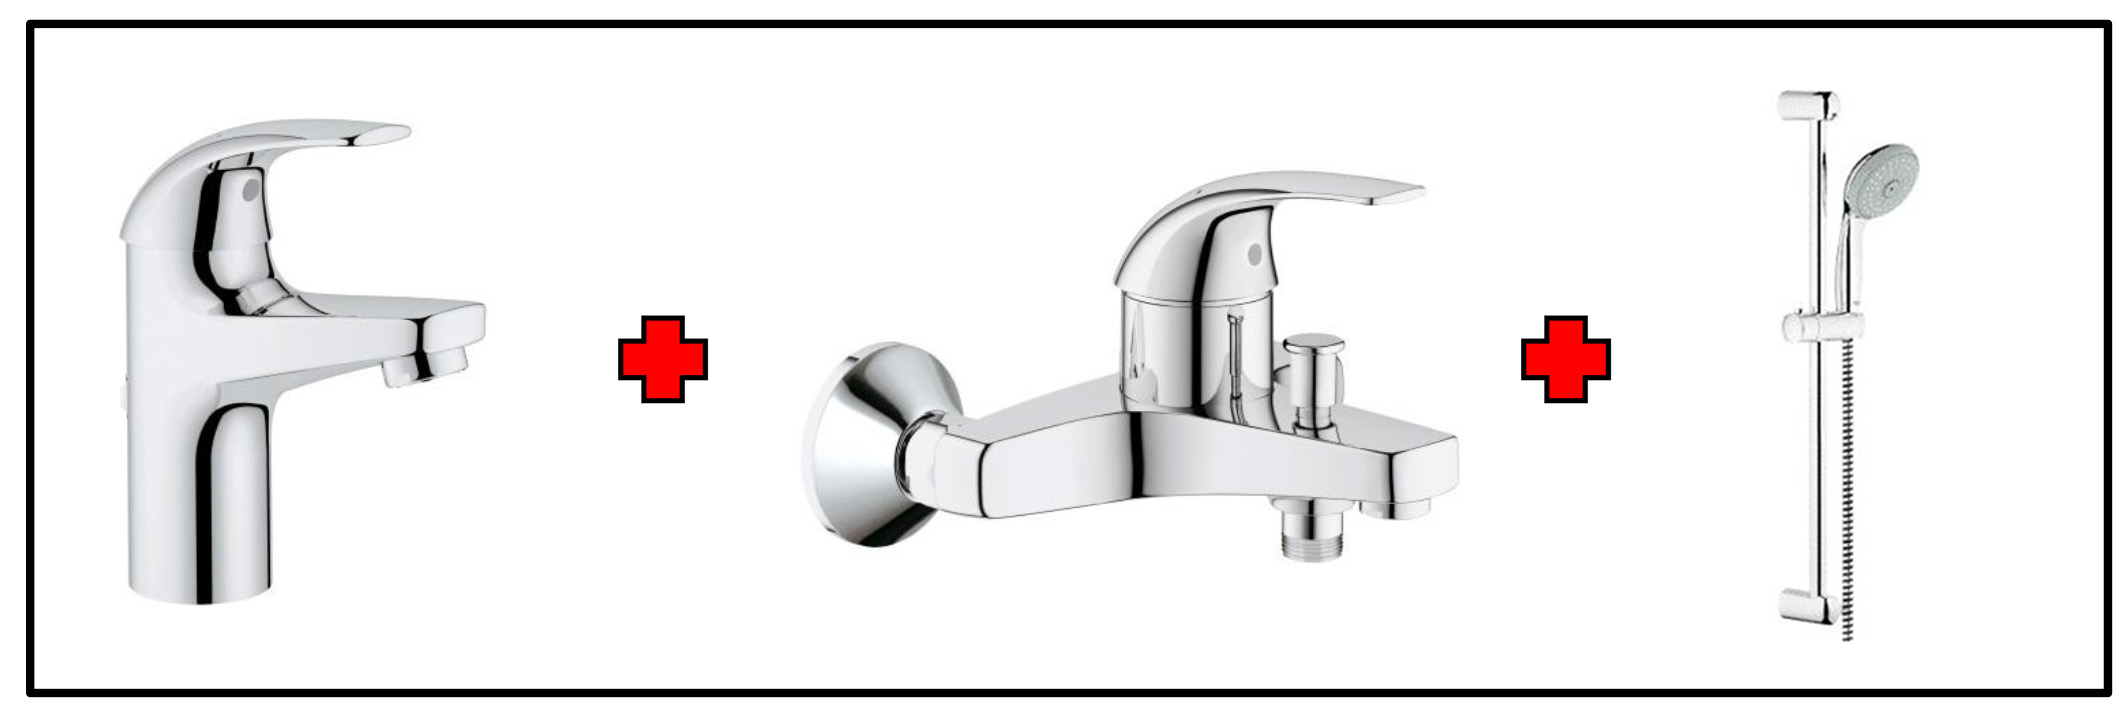 Grohe Mixer Package Promotions